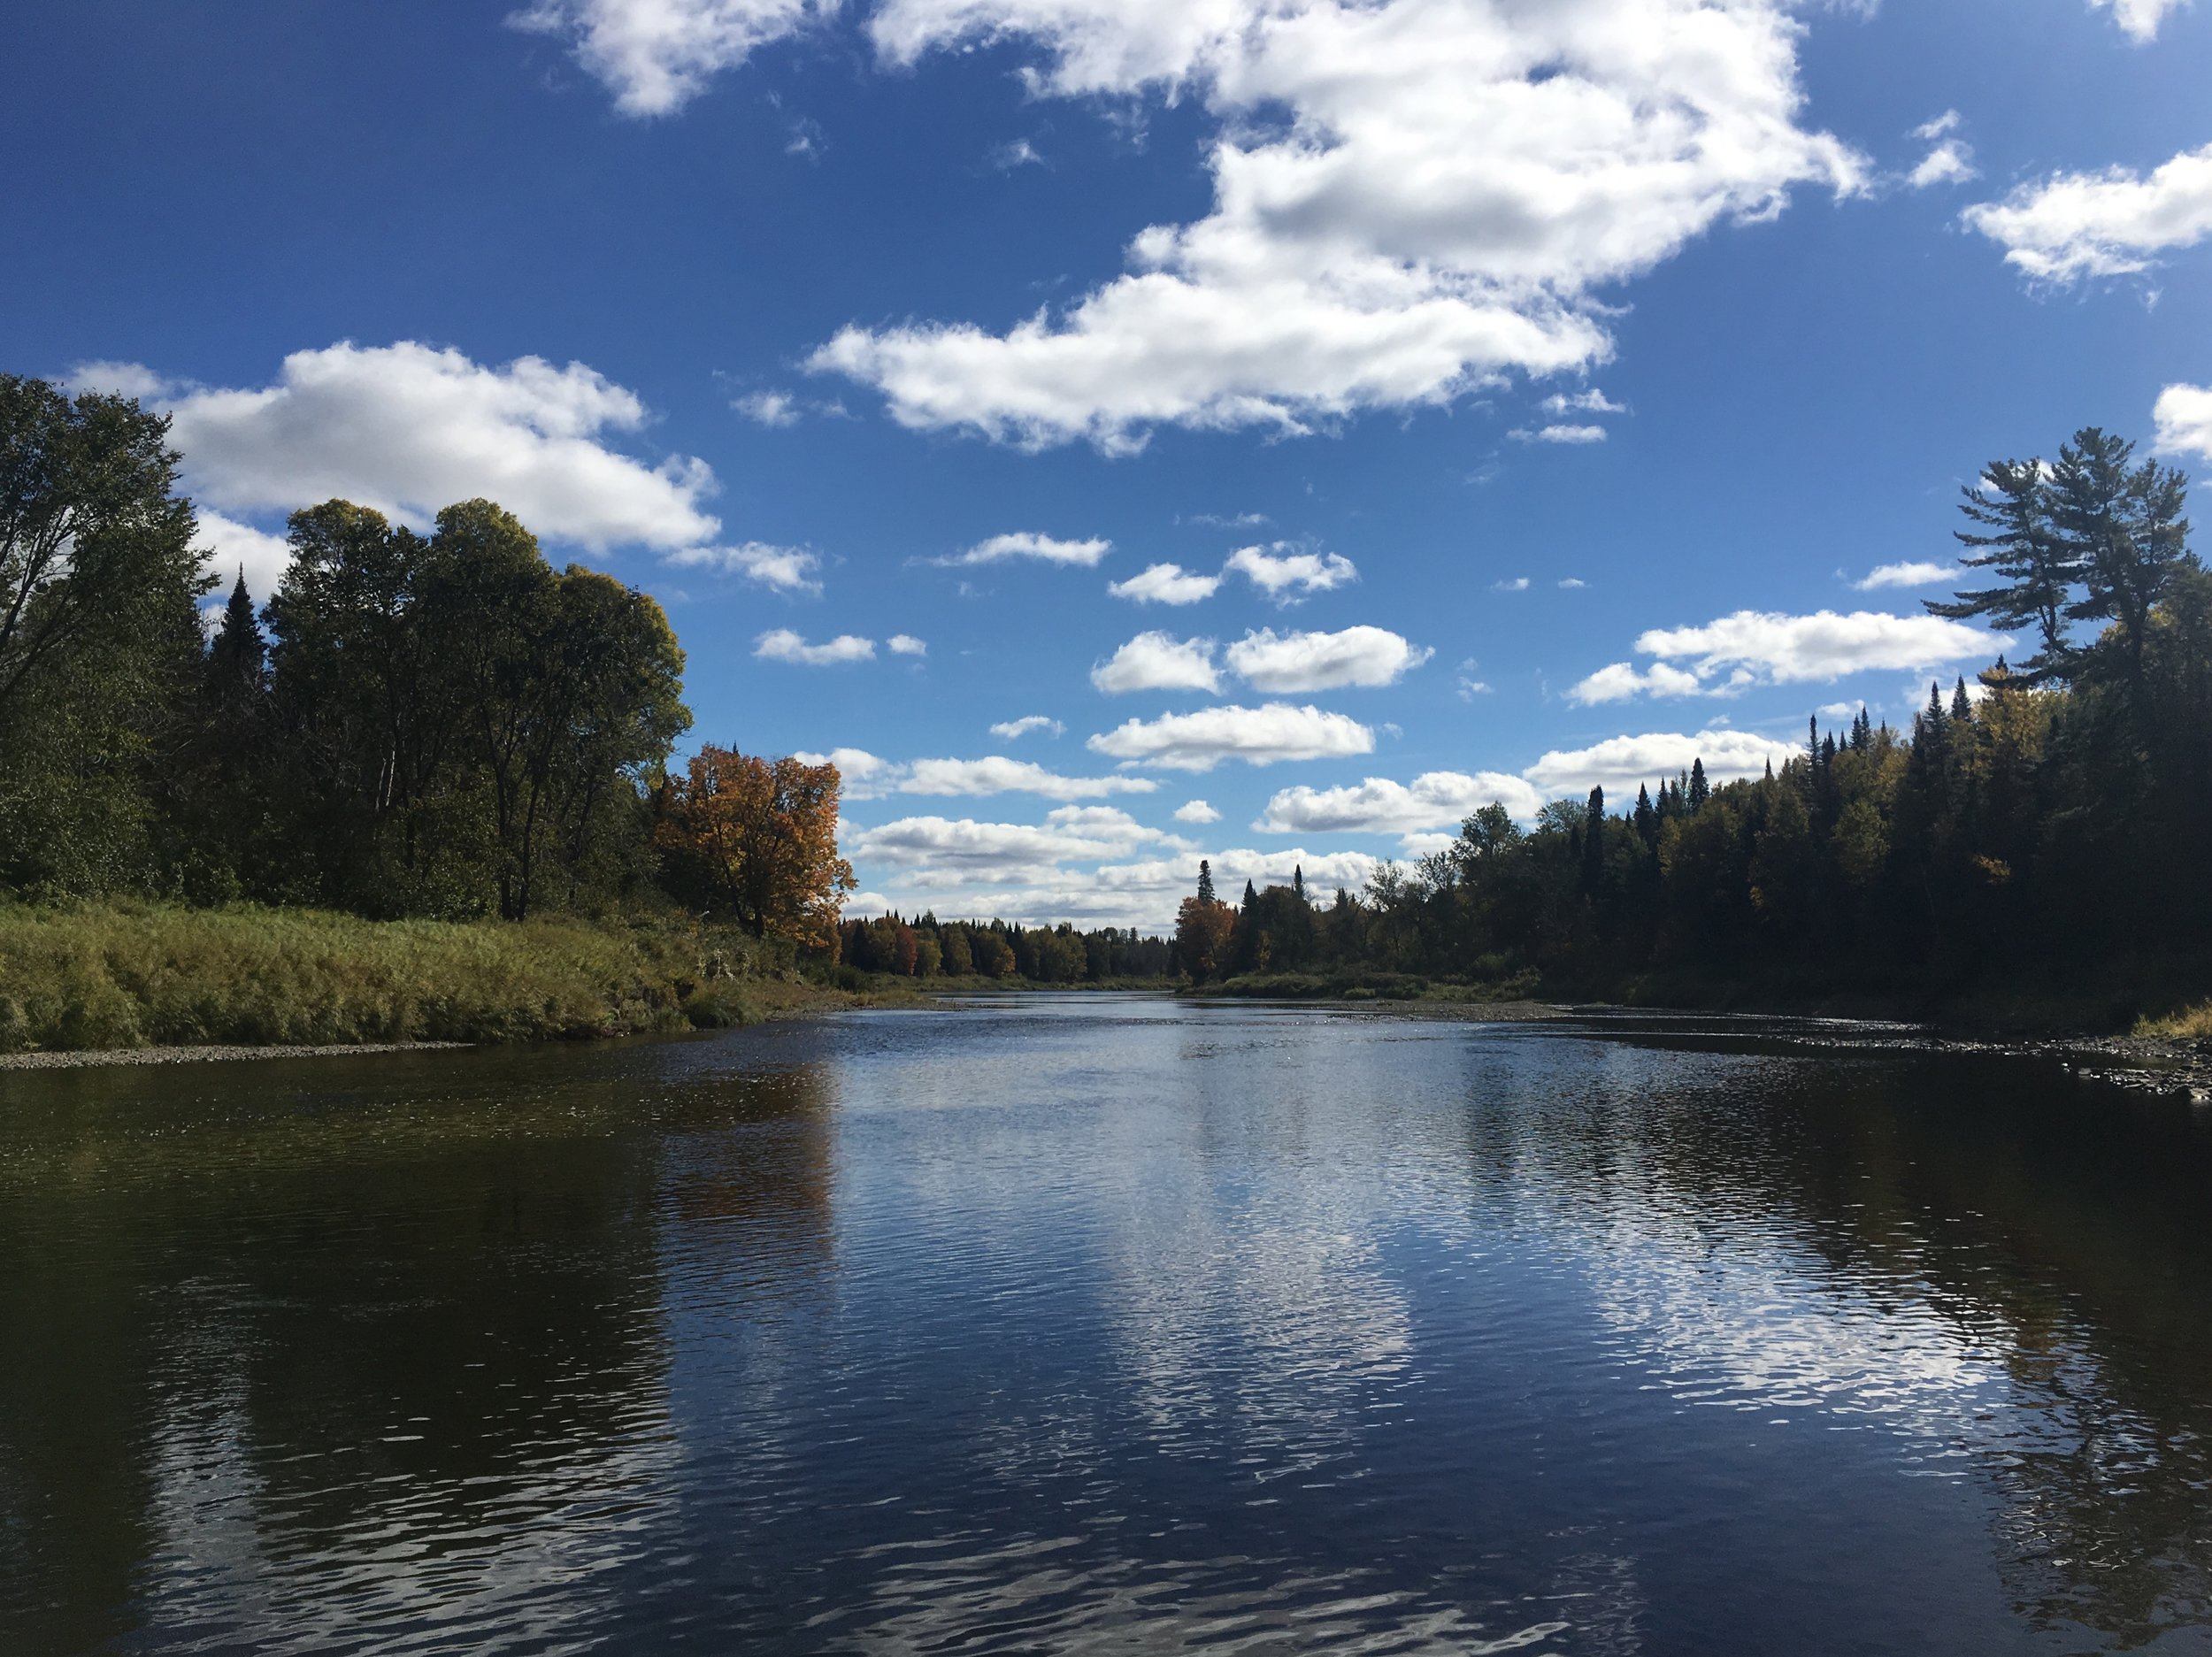 The Aroostook River is an undisturbed, beautiful body of water.